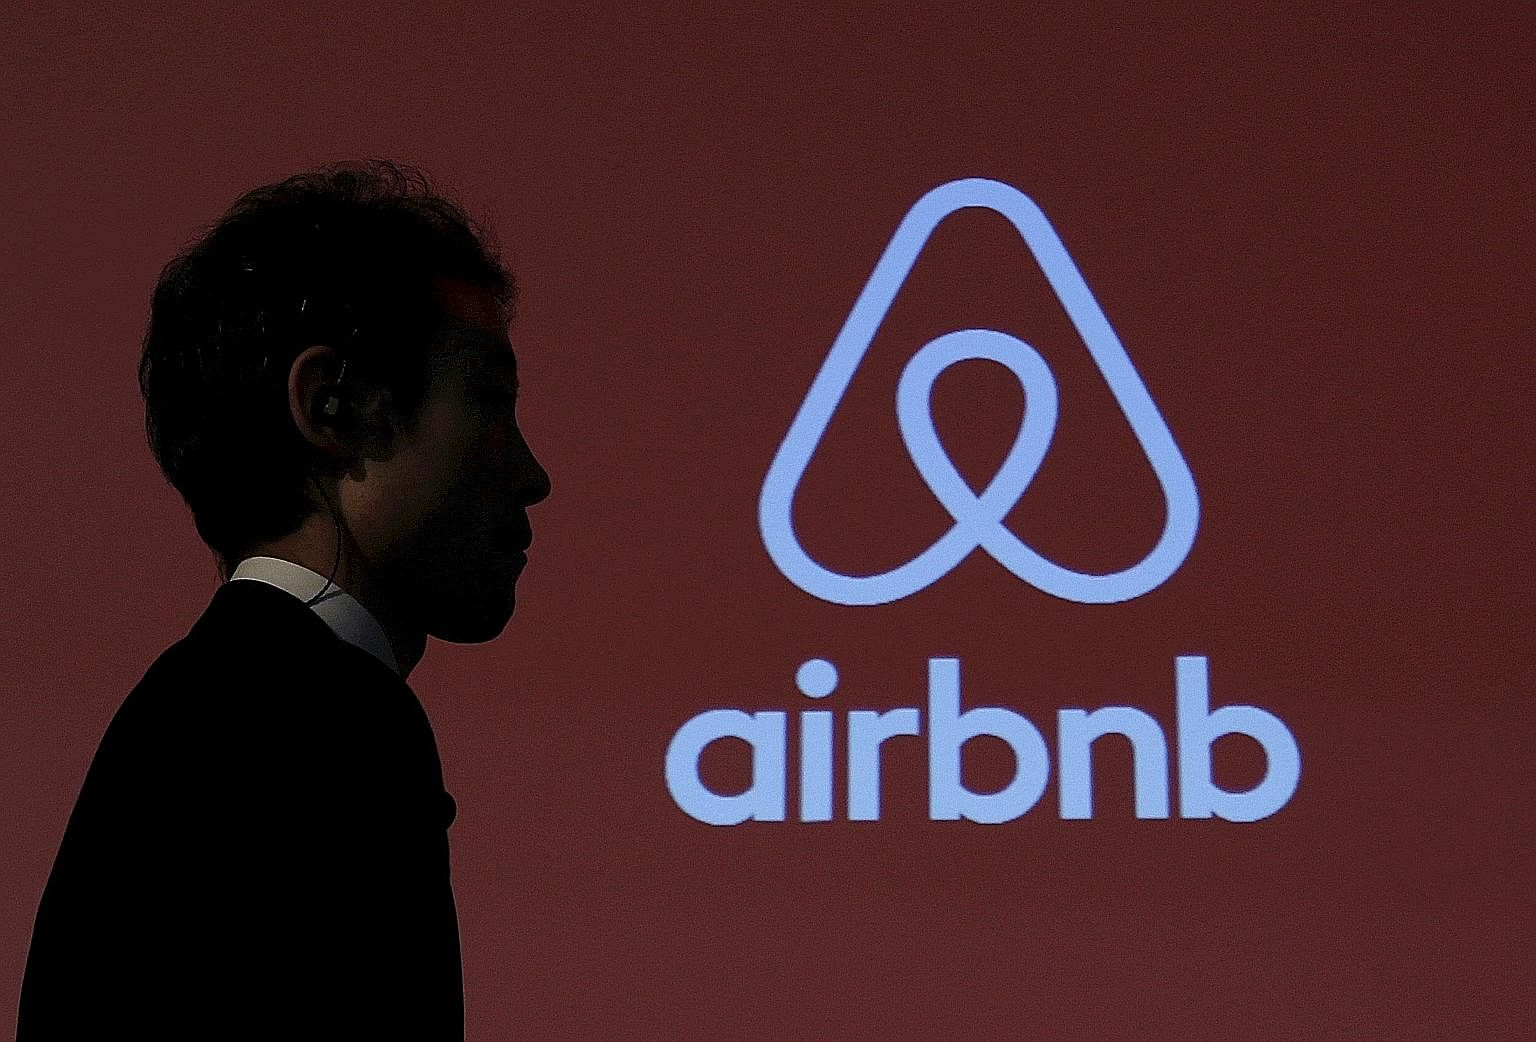 While Airbnb and Uber have already set up shop in Singapore, the sharing economy in the Republic has been relatively slow to take off.